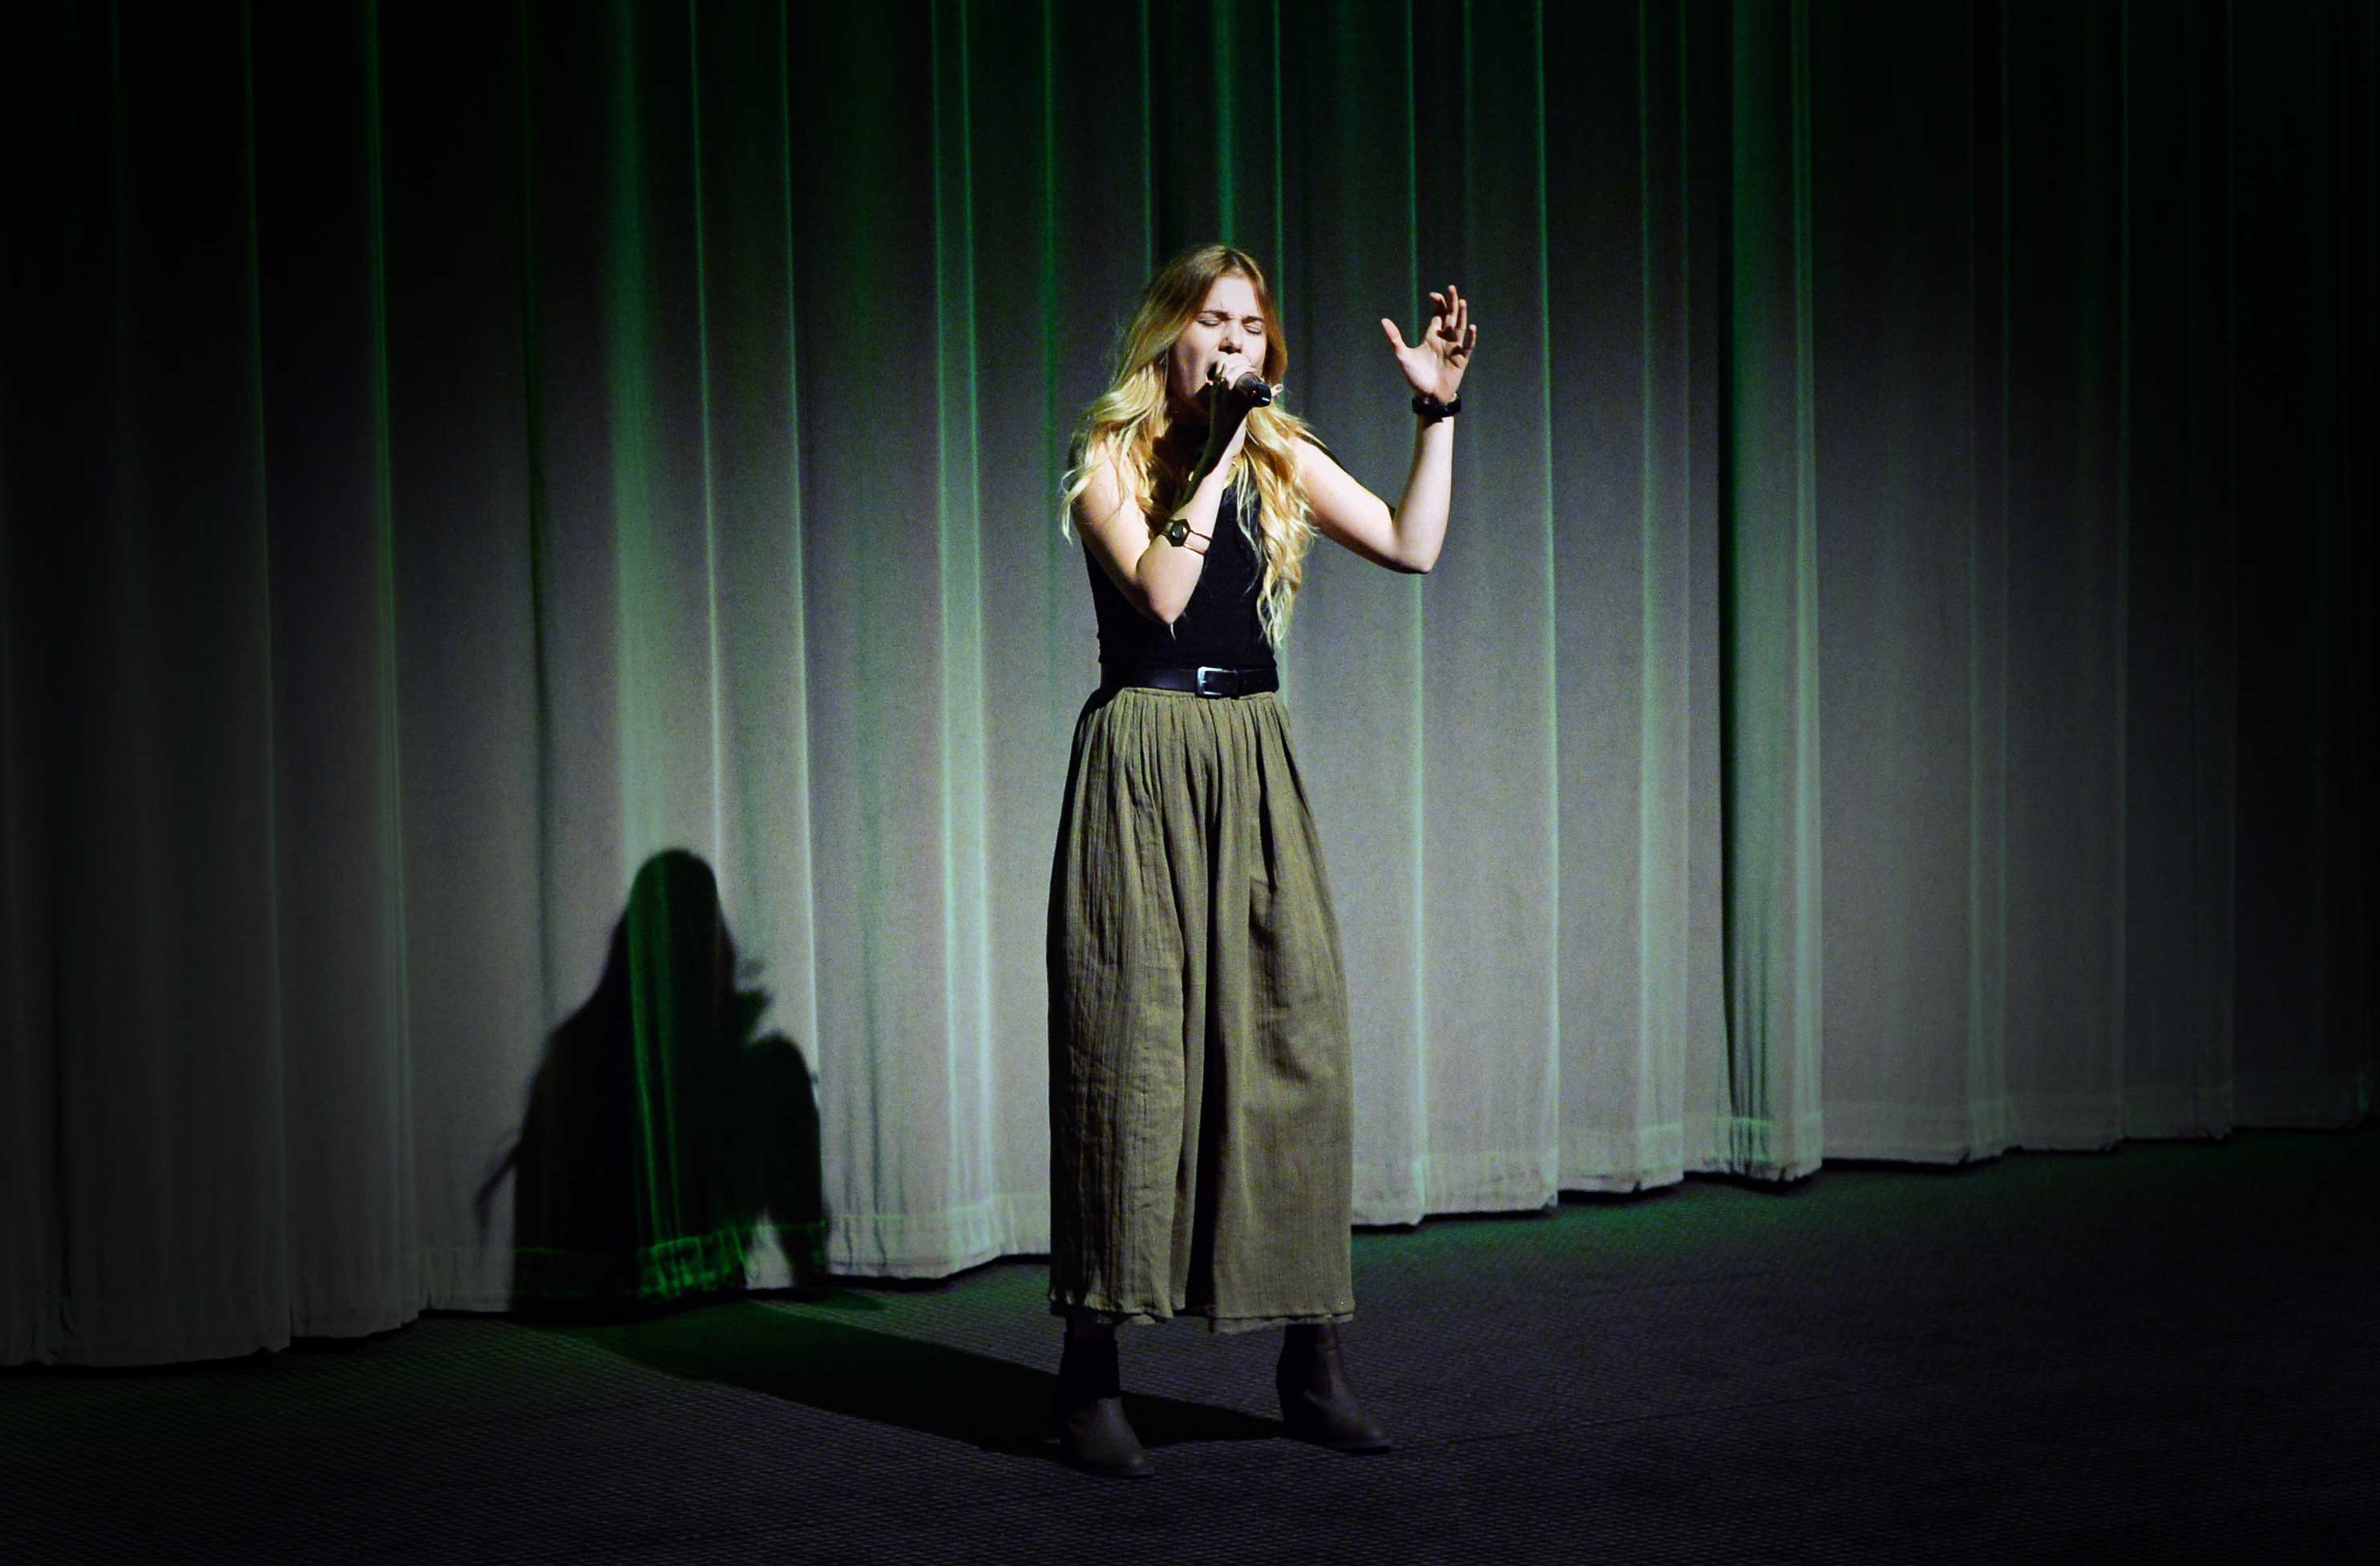 Esther Graf performing Mercedes Benz